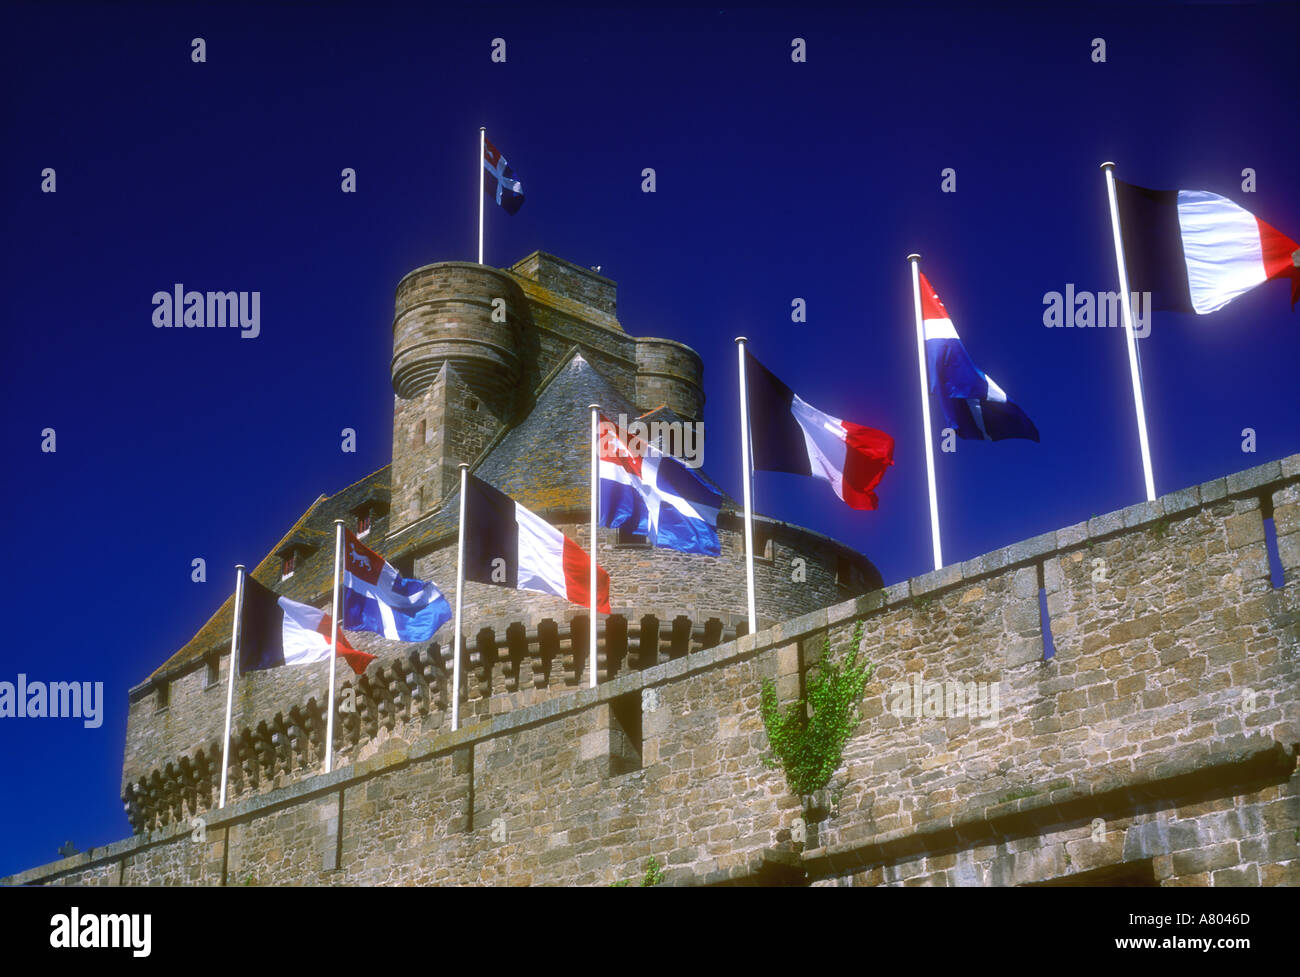 European Union flags on city walls of St Malo Brittany France - Stock Image